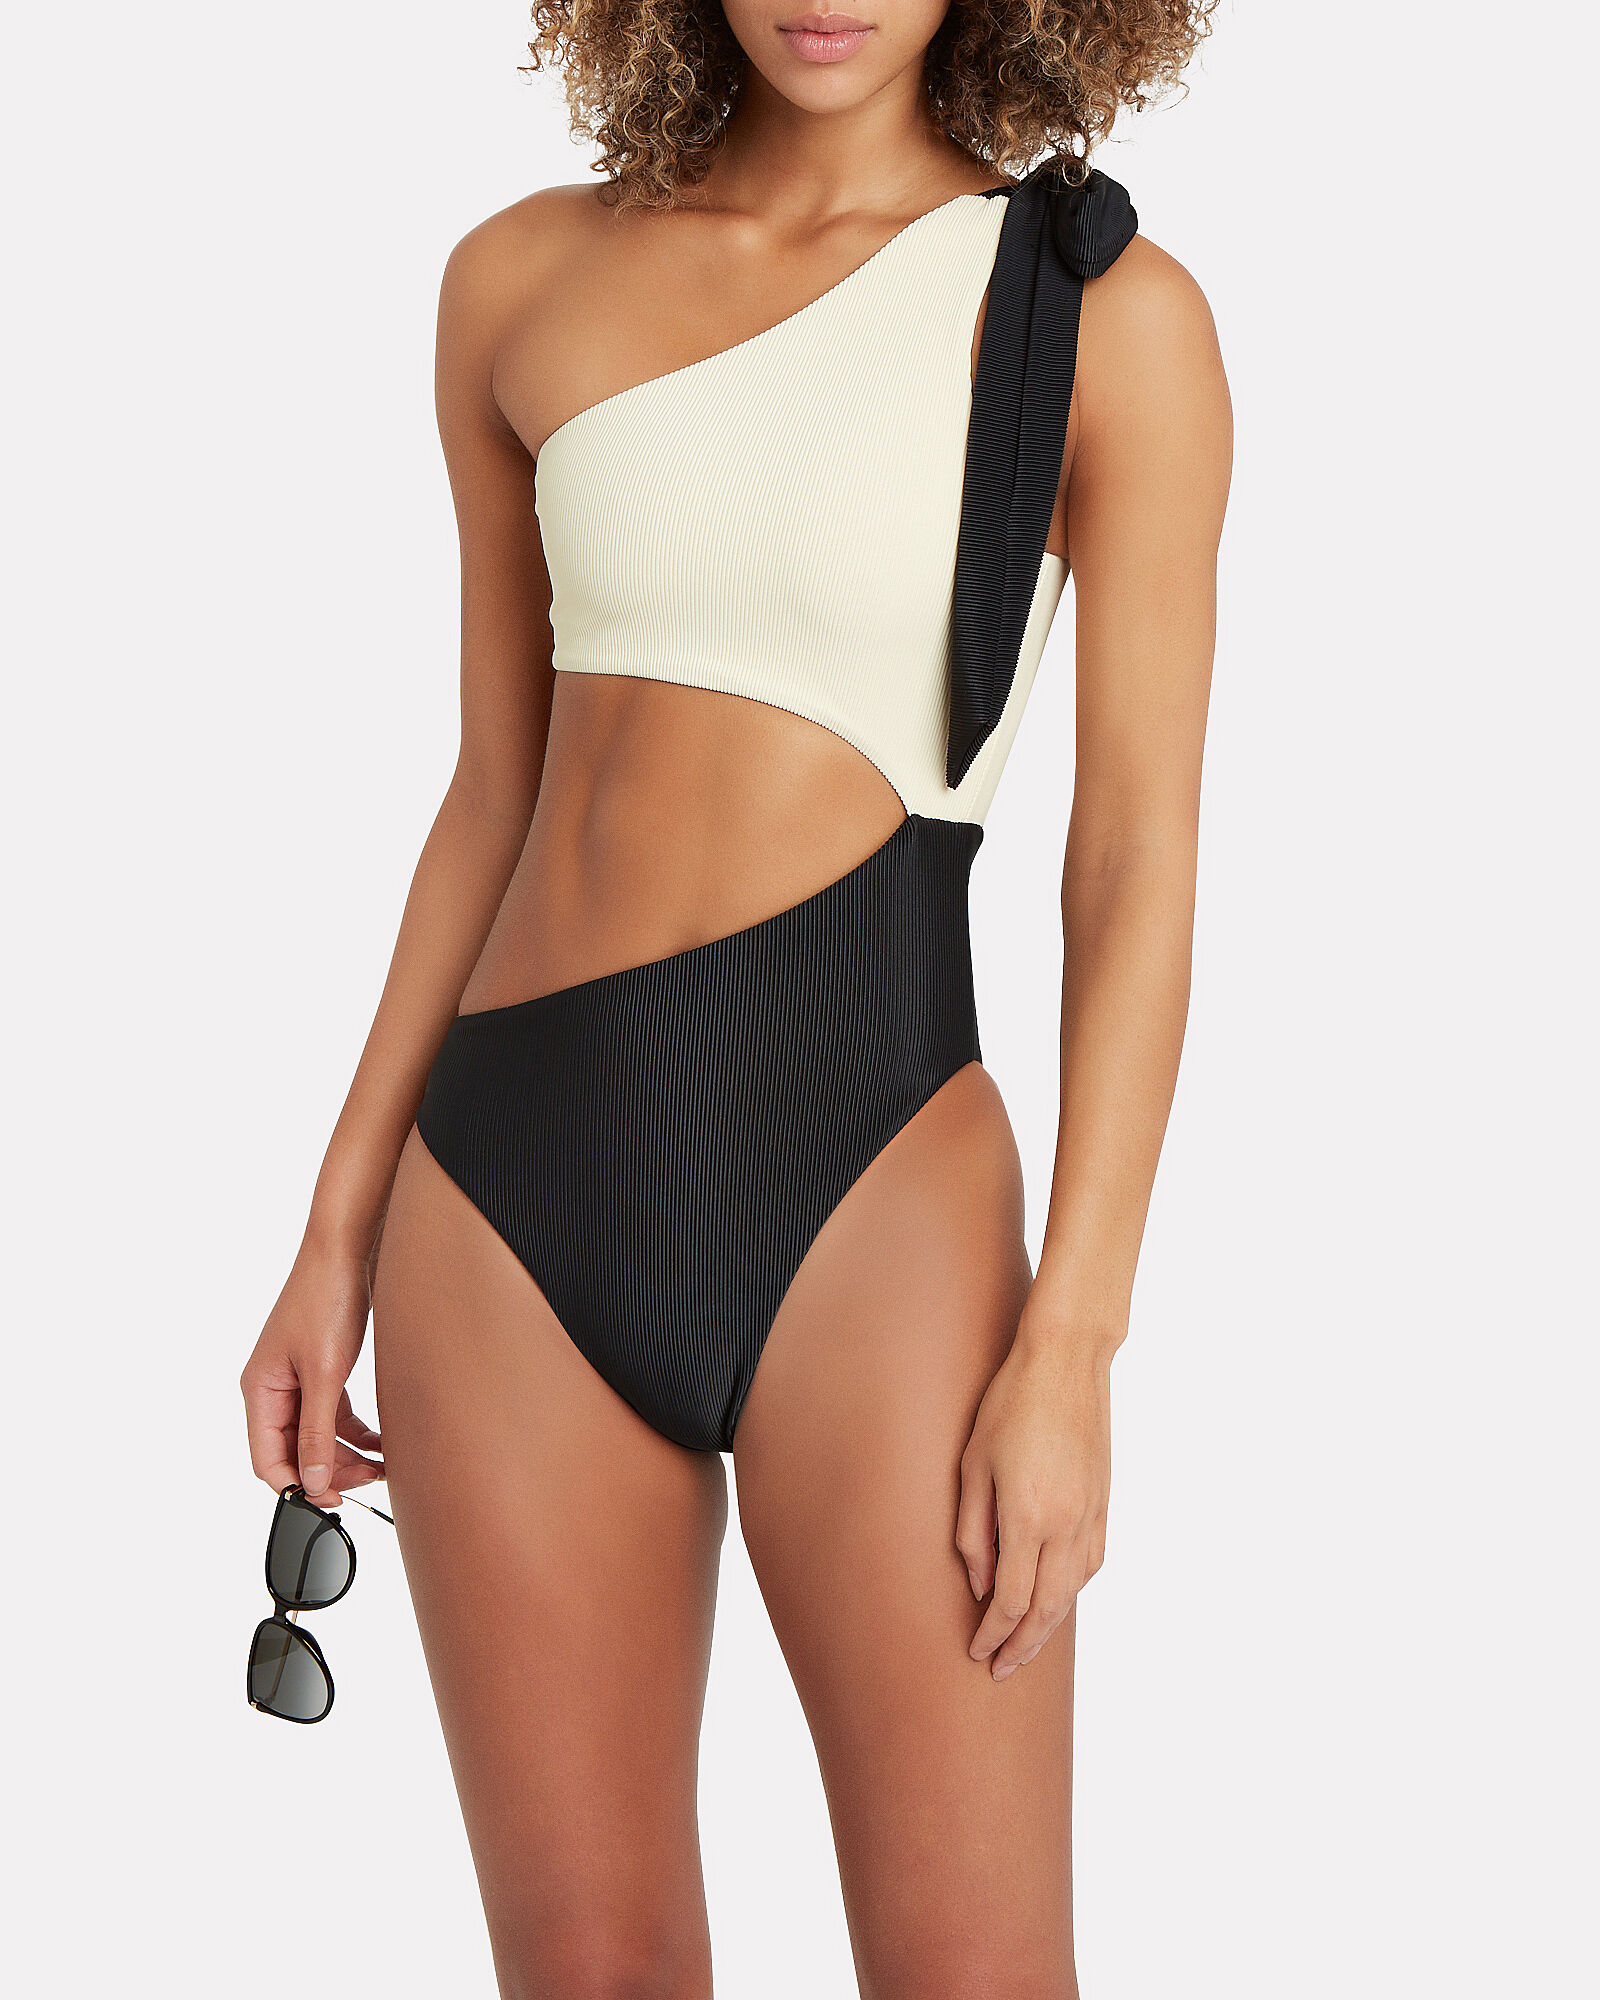 Cut-Out One-Piece Swimsuit, IVORY/BLACK, hi-res